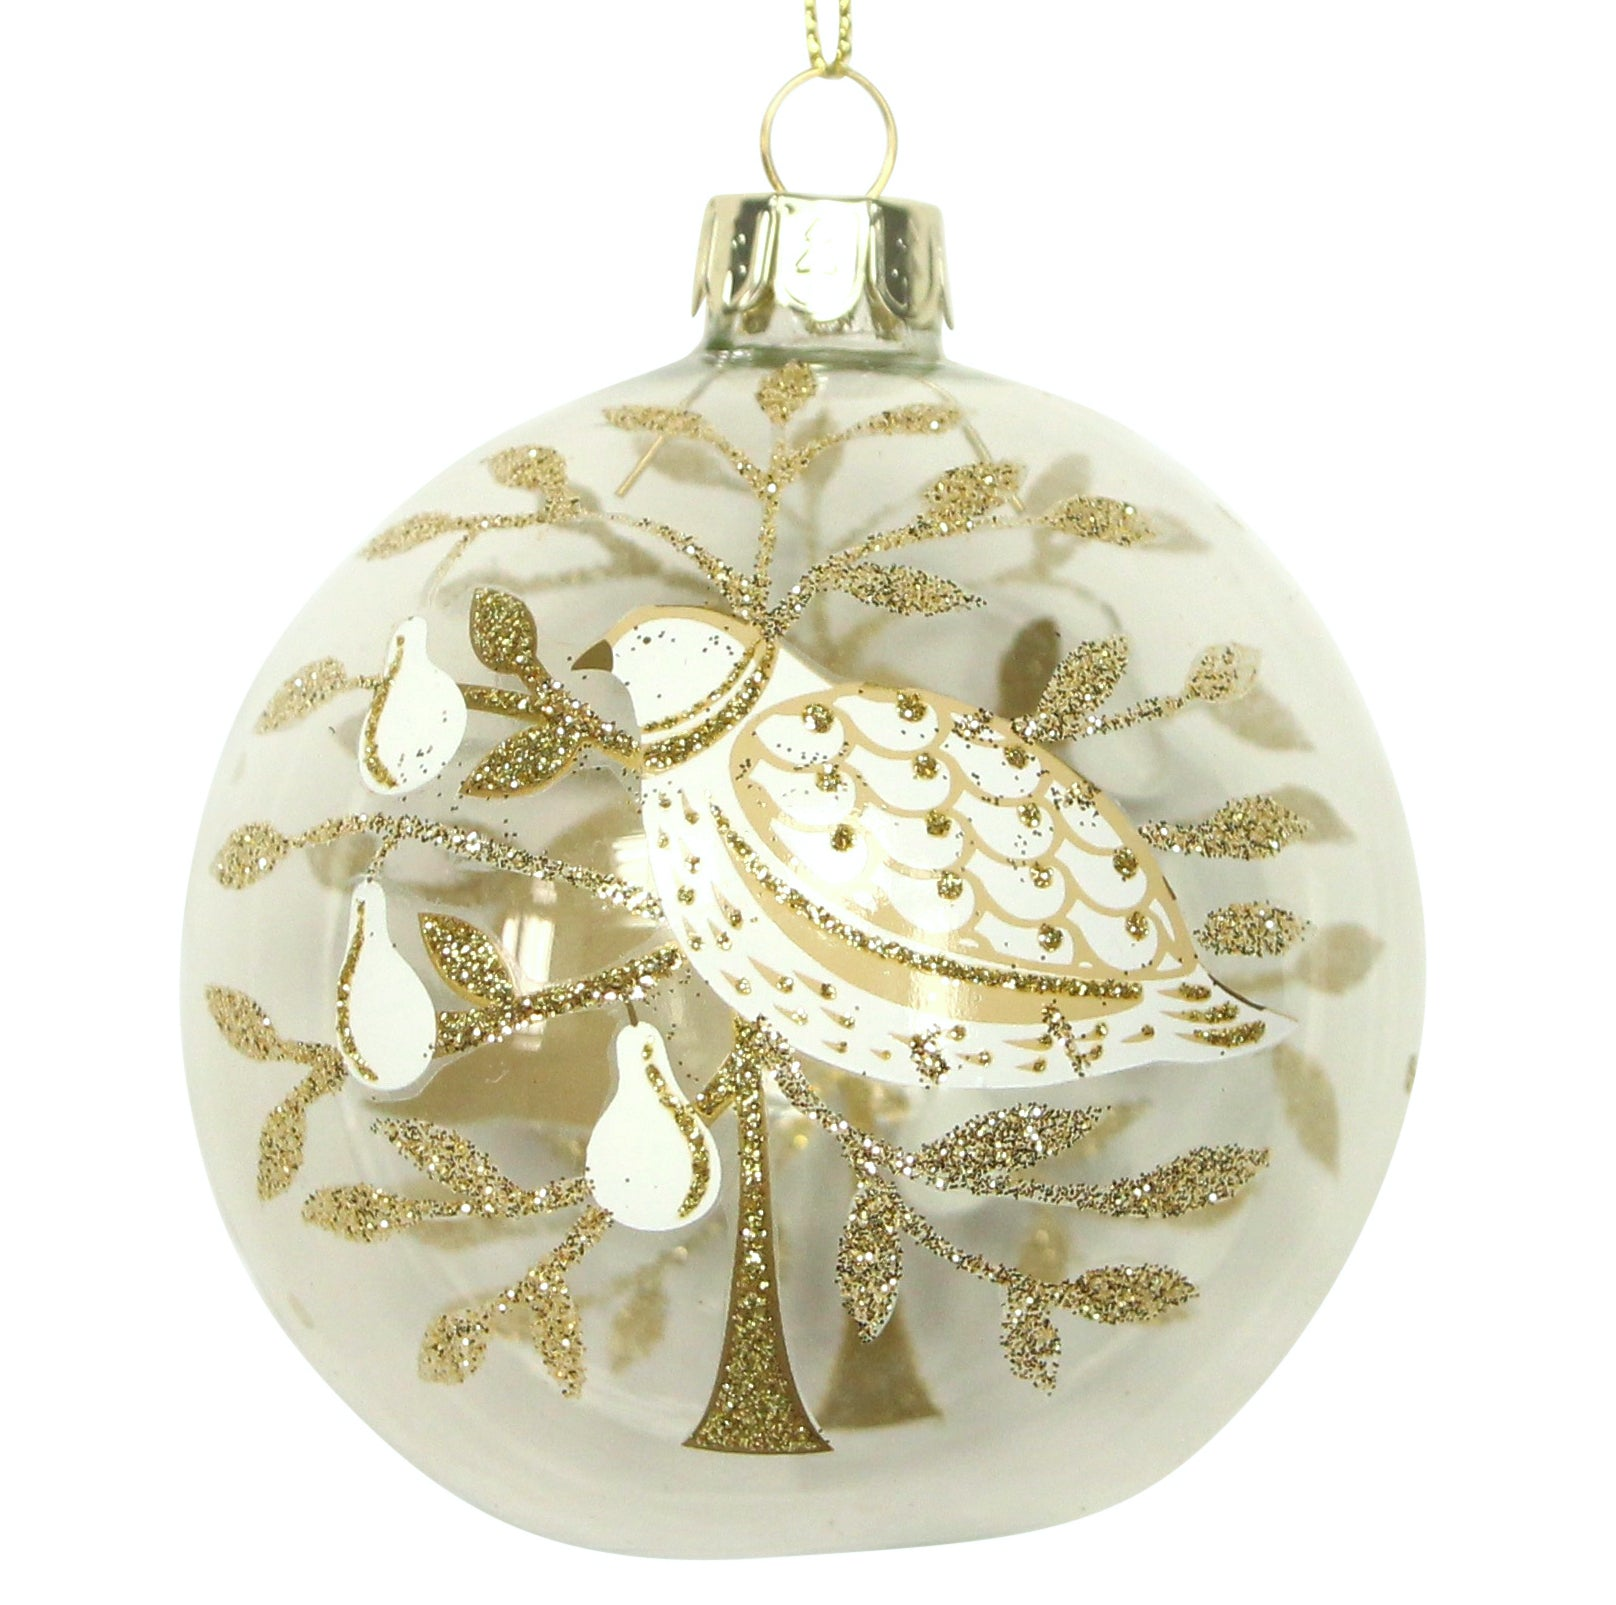 Glass Bauble - Gold Partridge in a Pear Tree